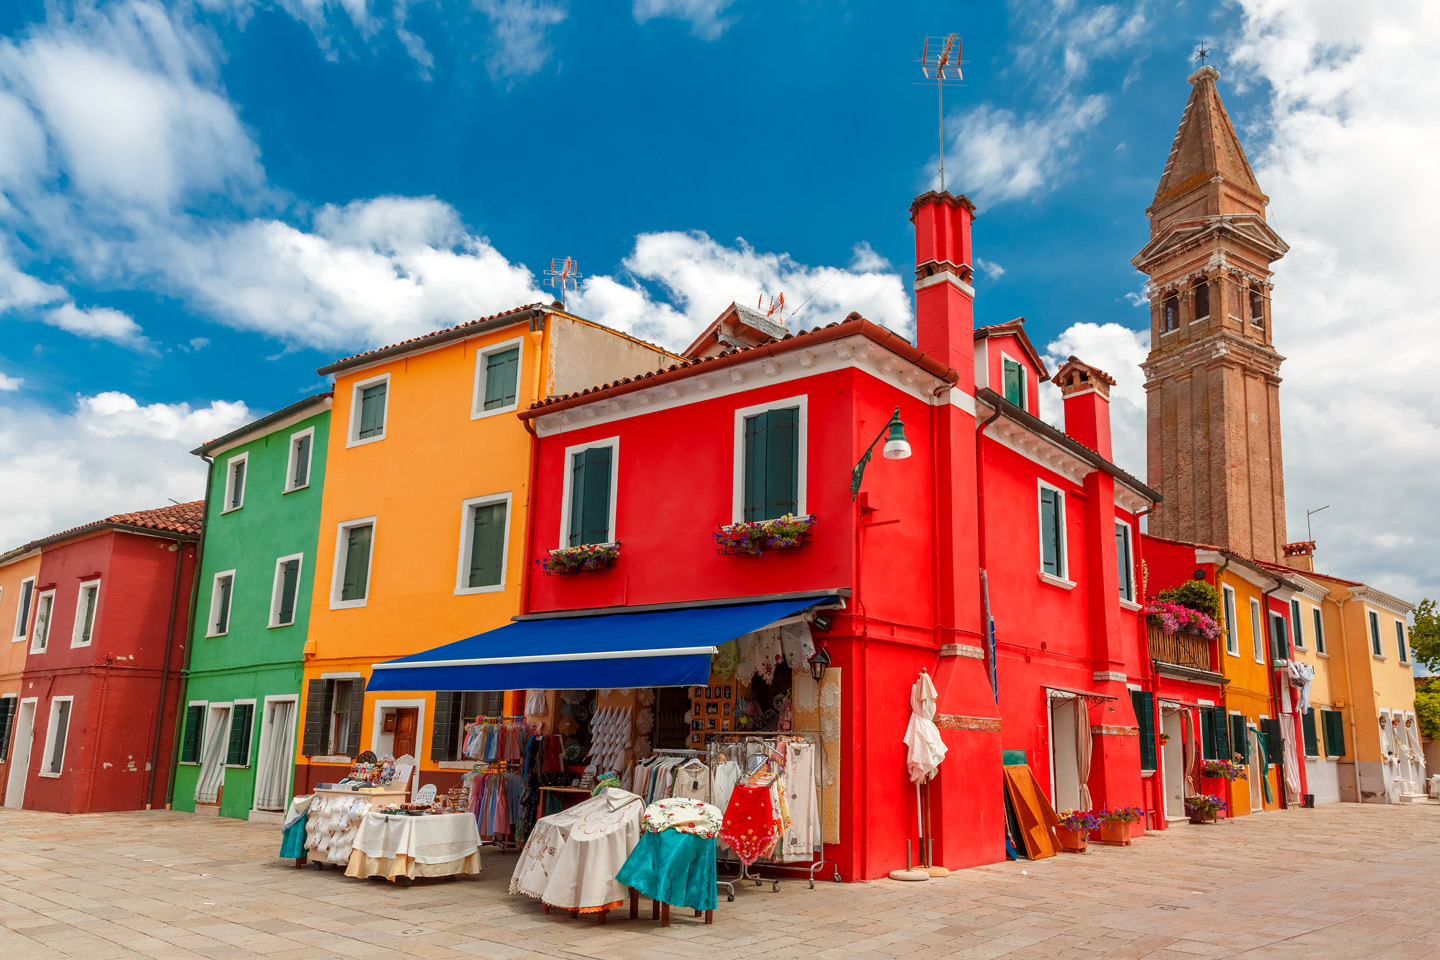 The colored houses in Burano